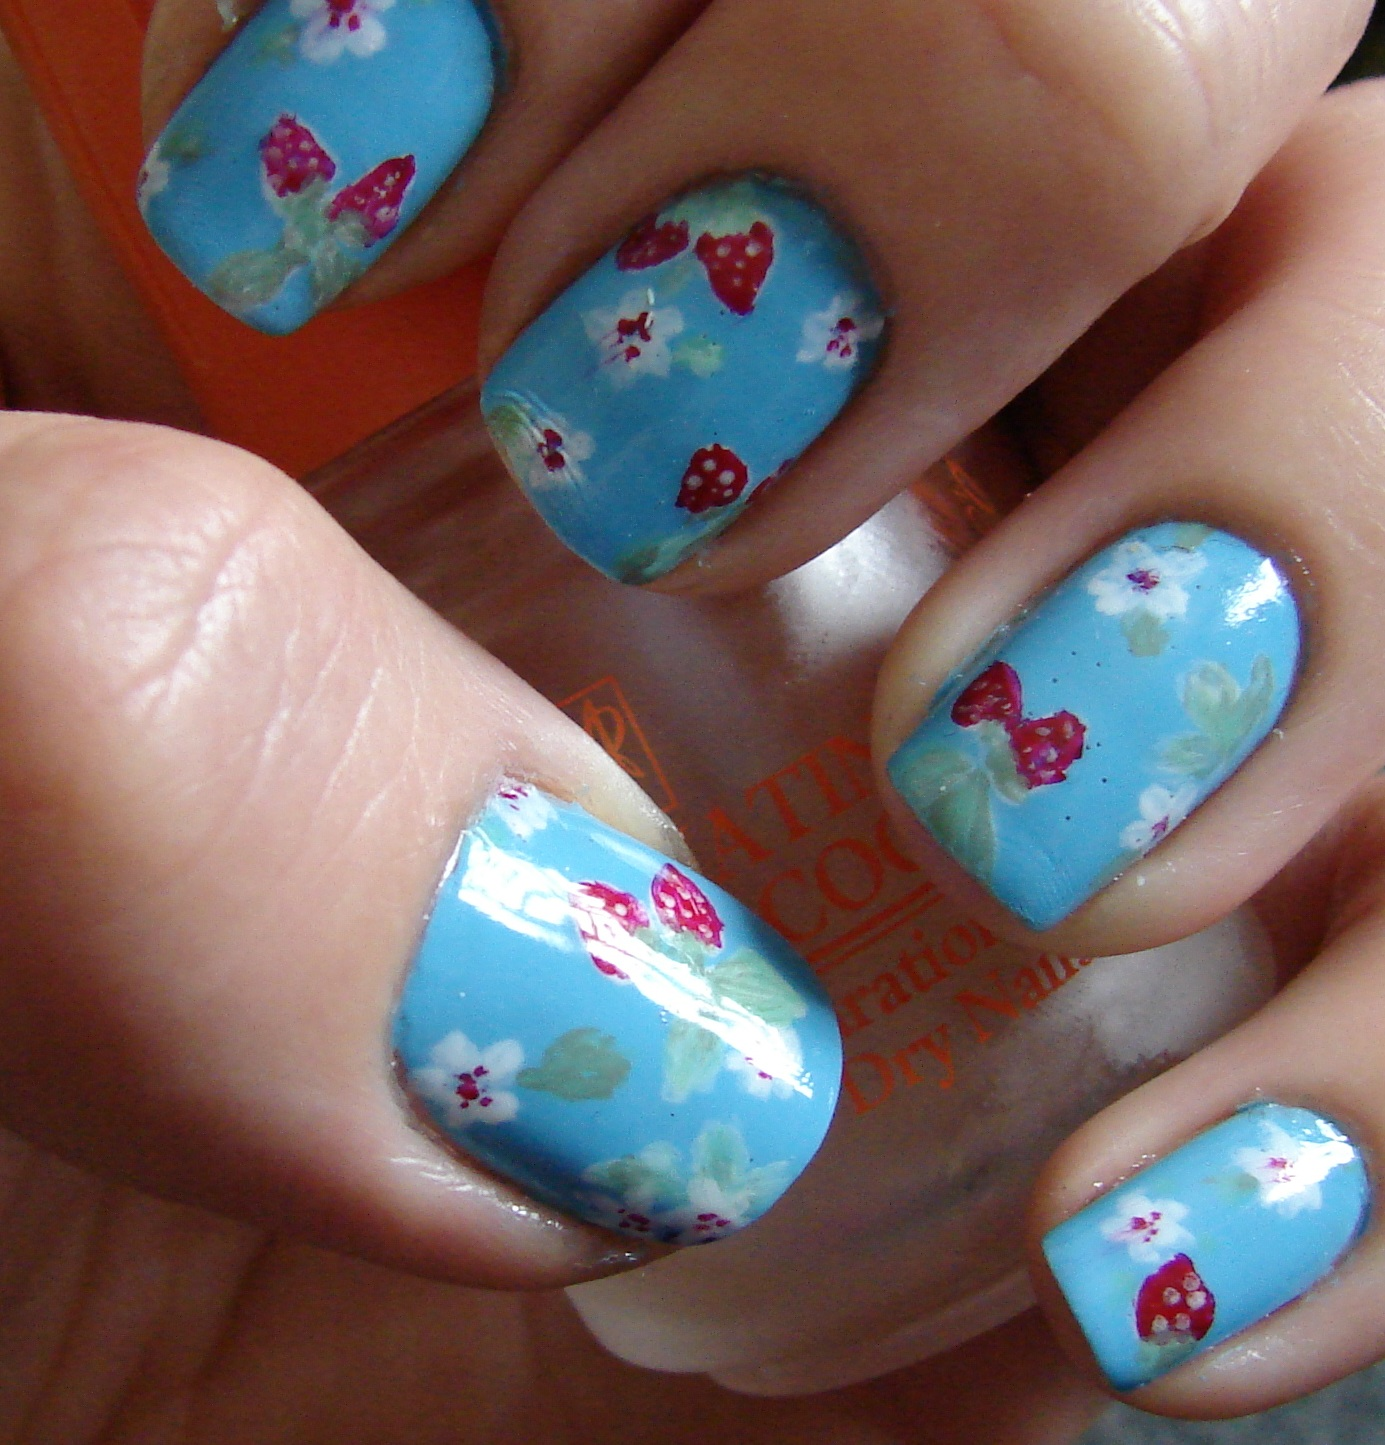 Nail Arts By Rozemist Cath Kidston Vintage Inspired: Kawaii Nail Art: Cath Kidston Inspired Strawberries